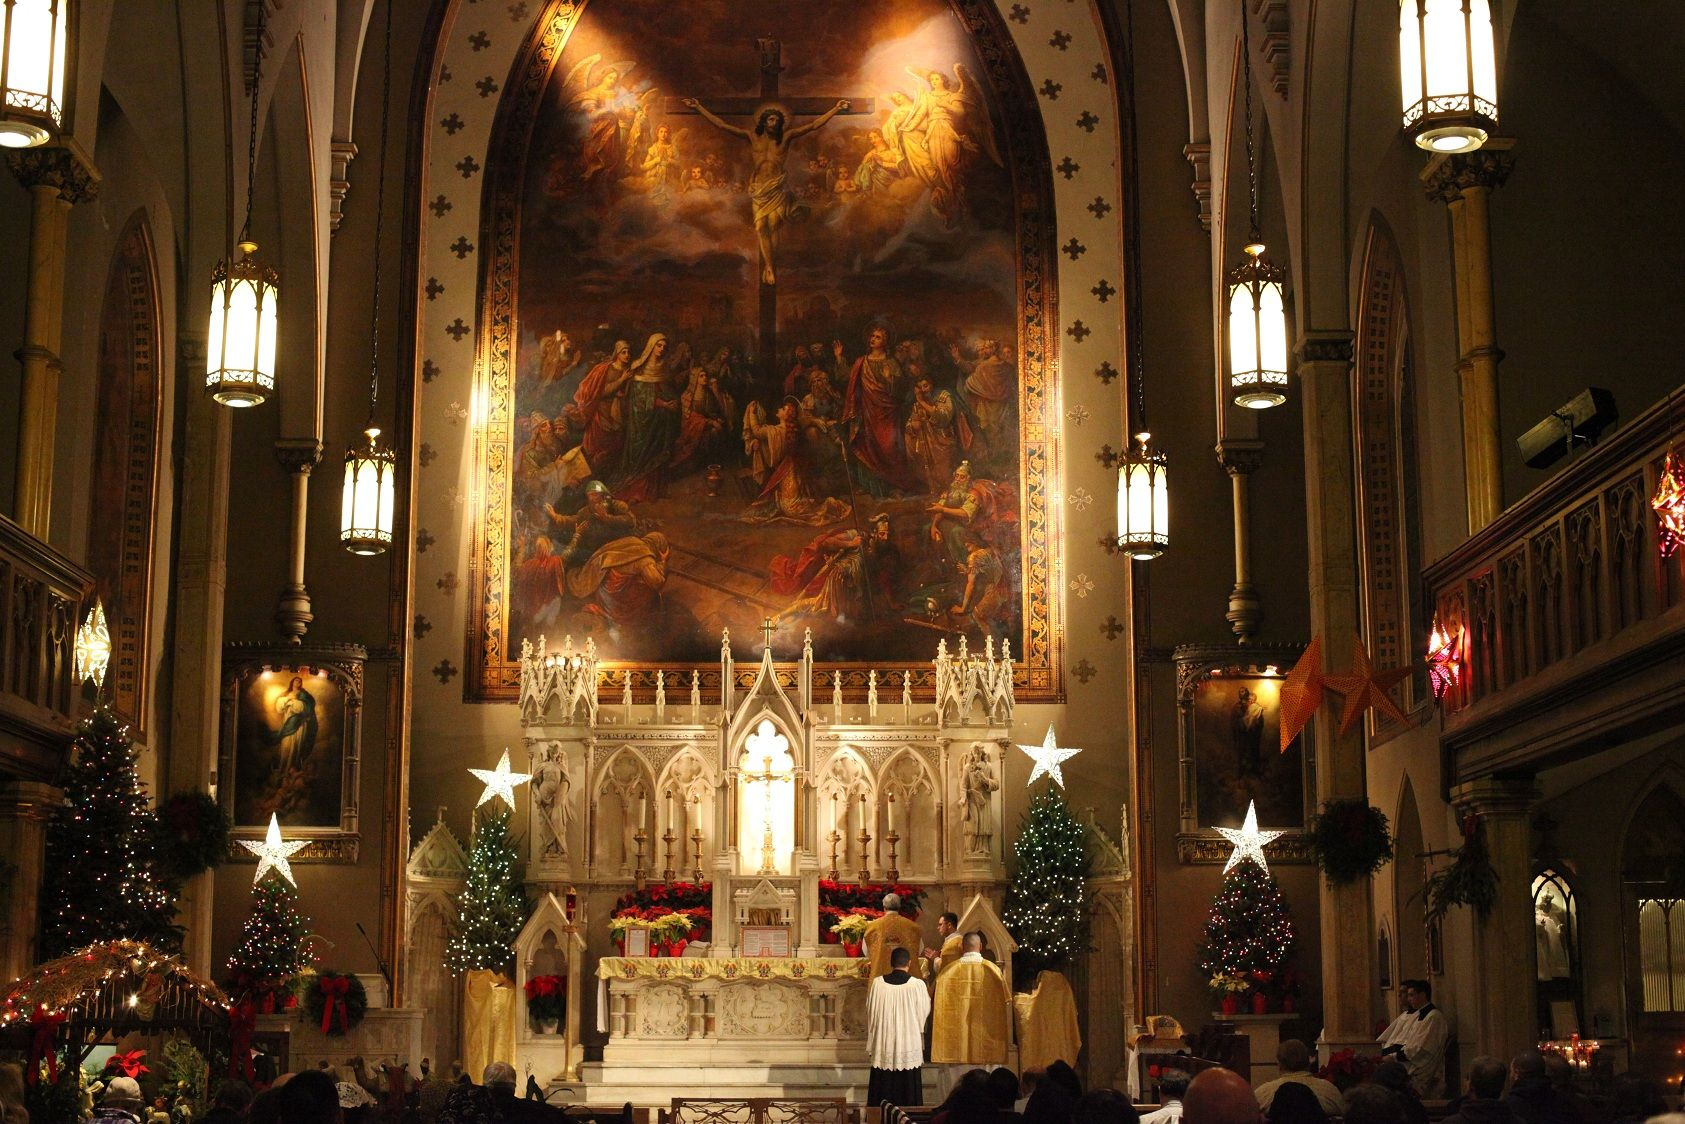 Church of the holy innocents 126 west 37th street at